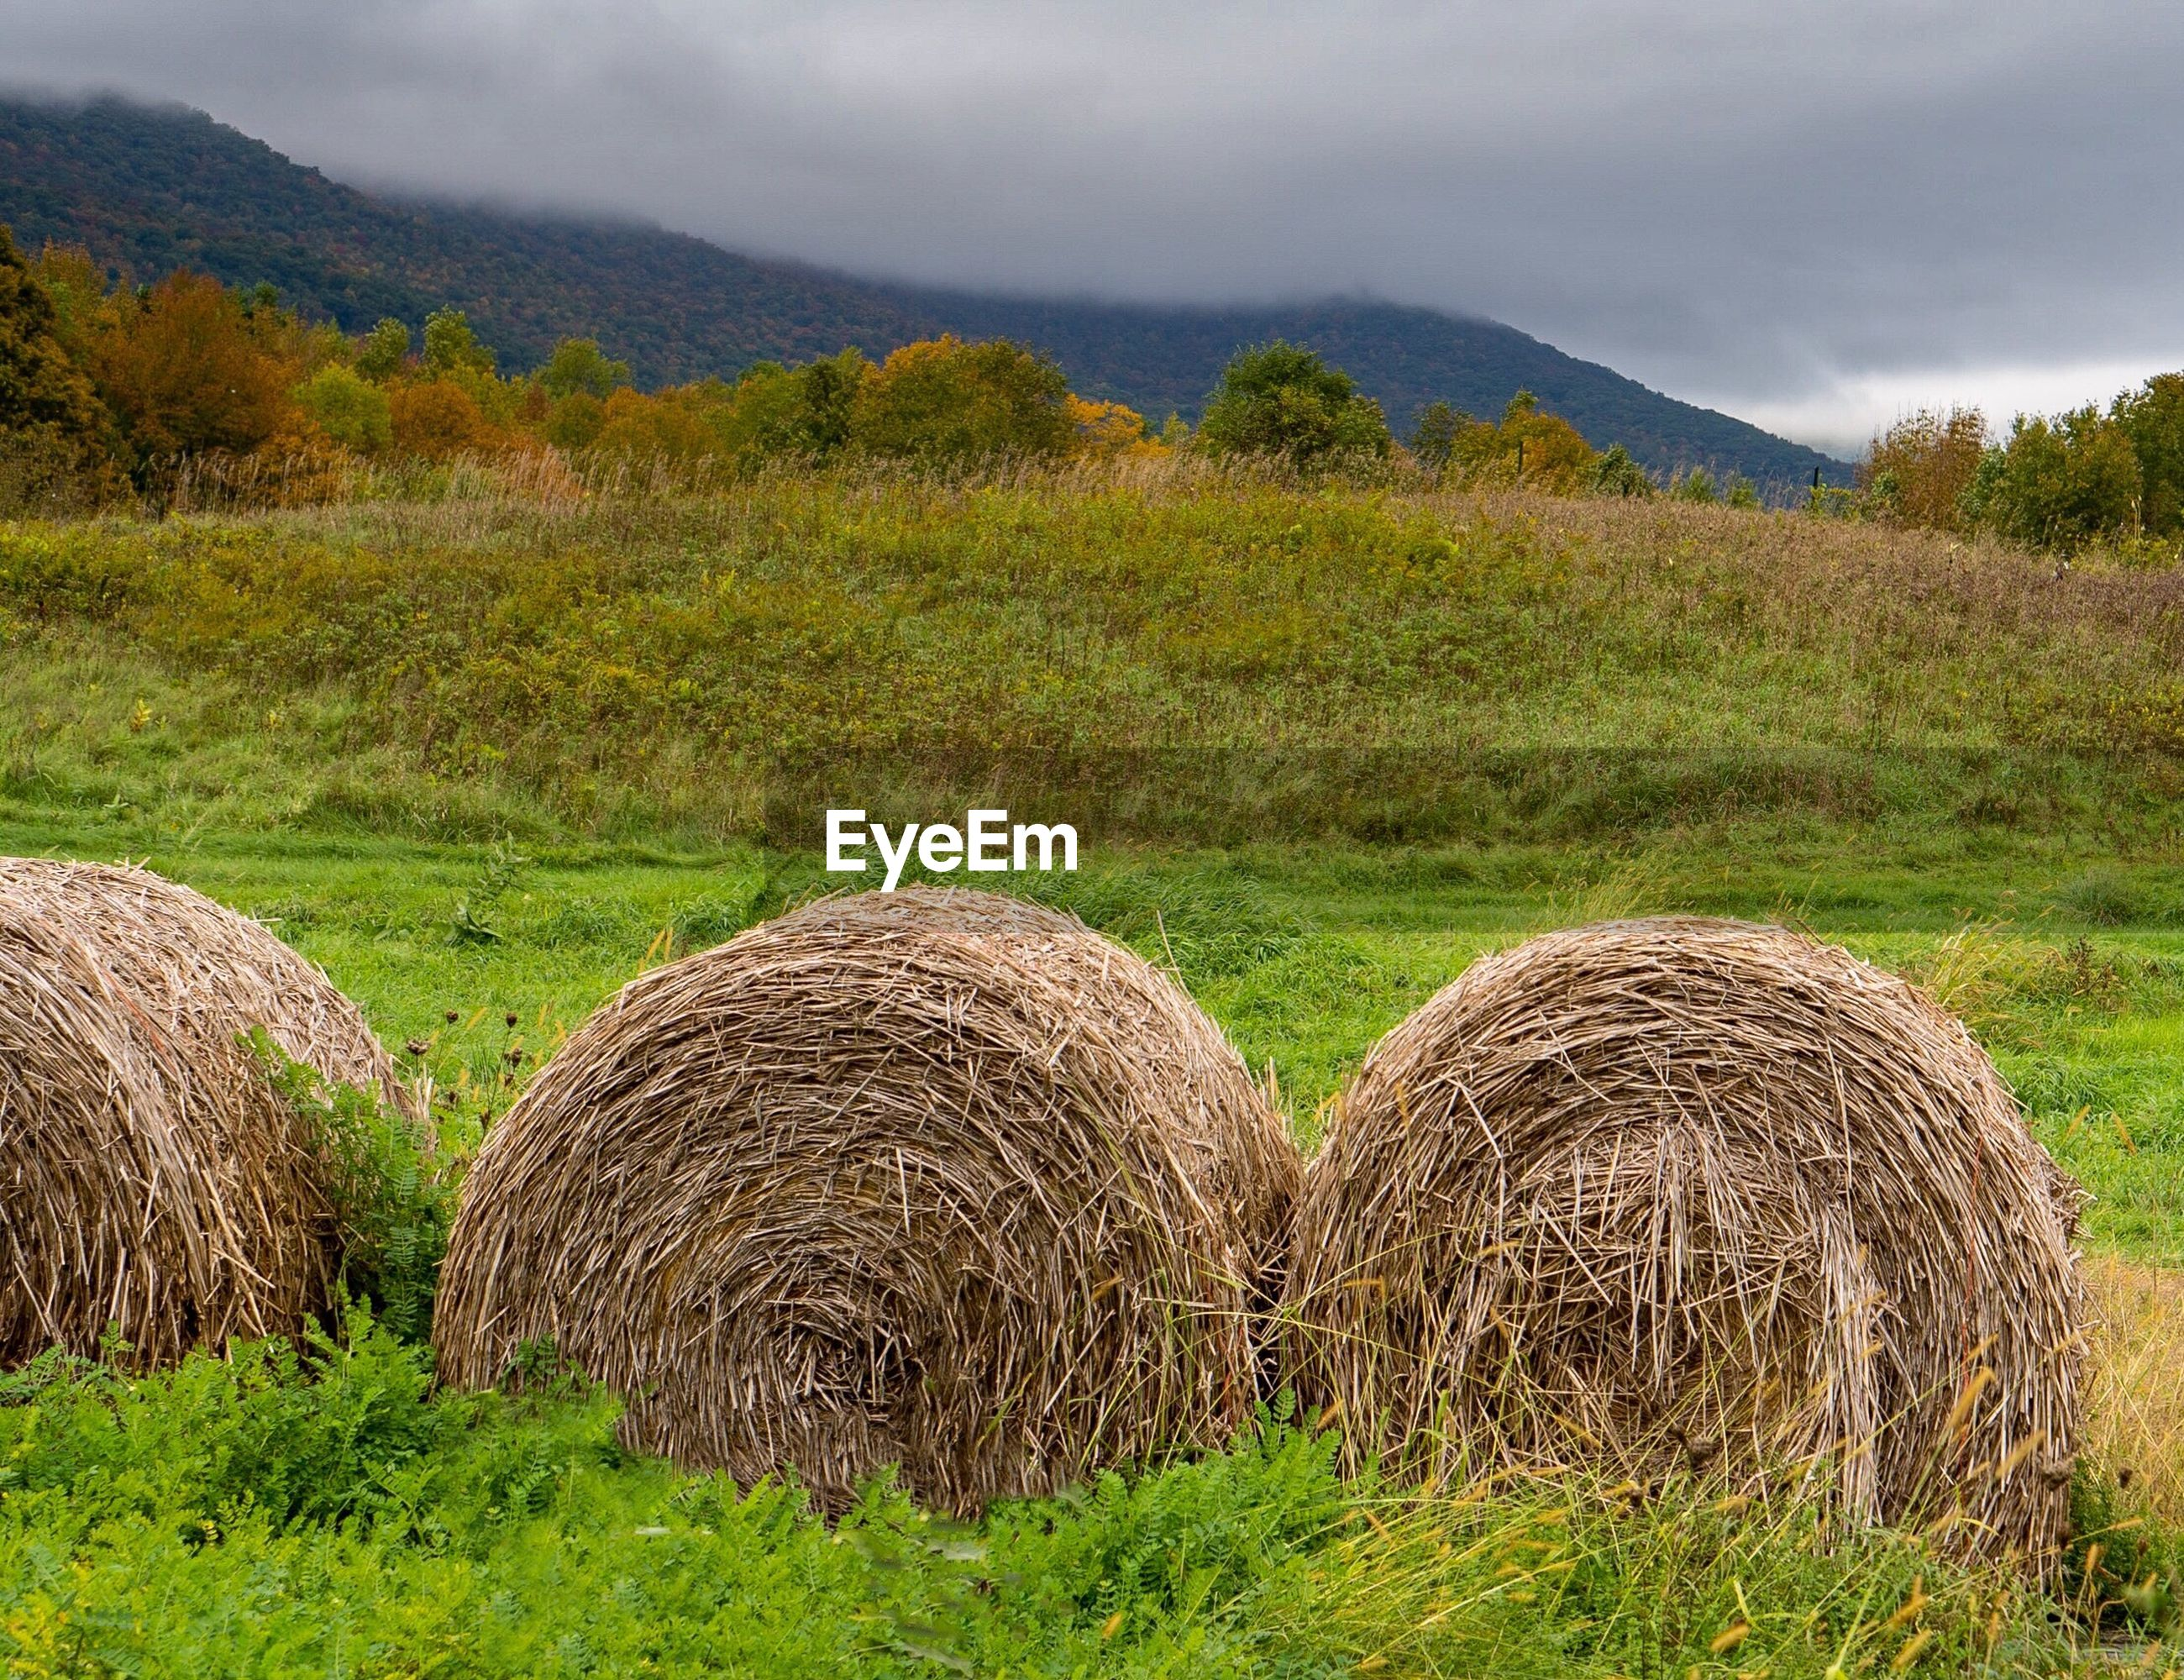 HAY BALES ON FIELD BY MOUNTAINS